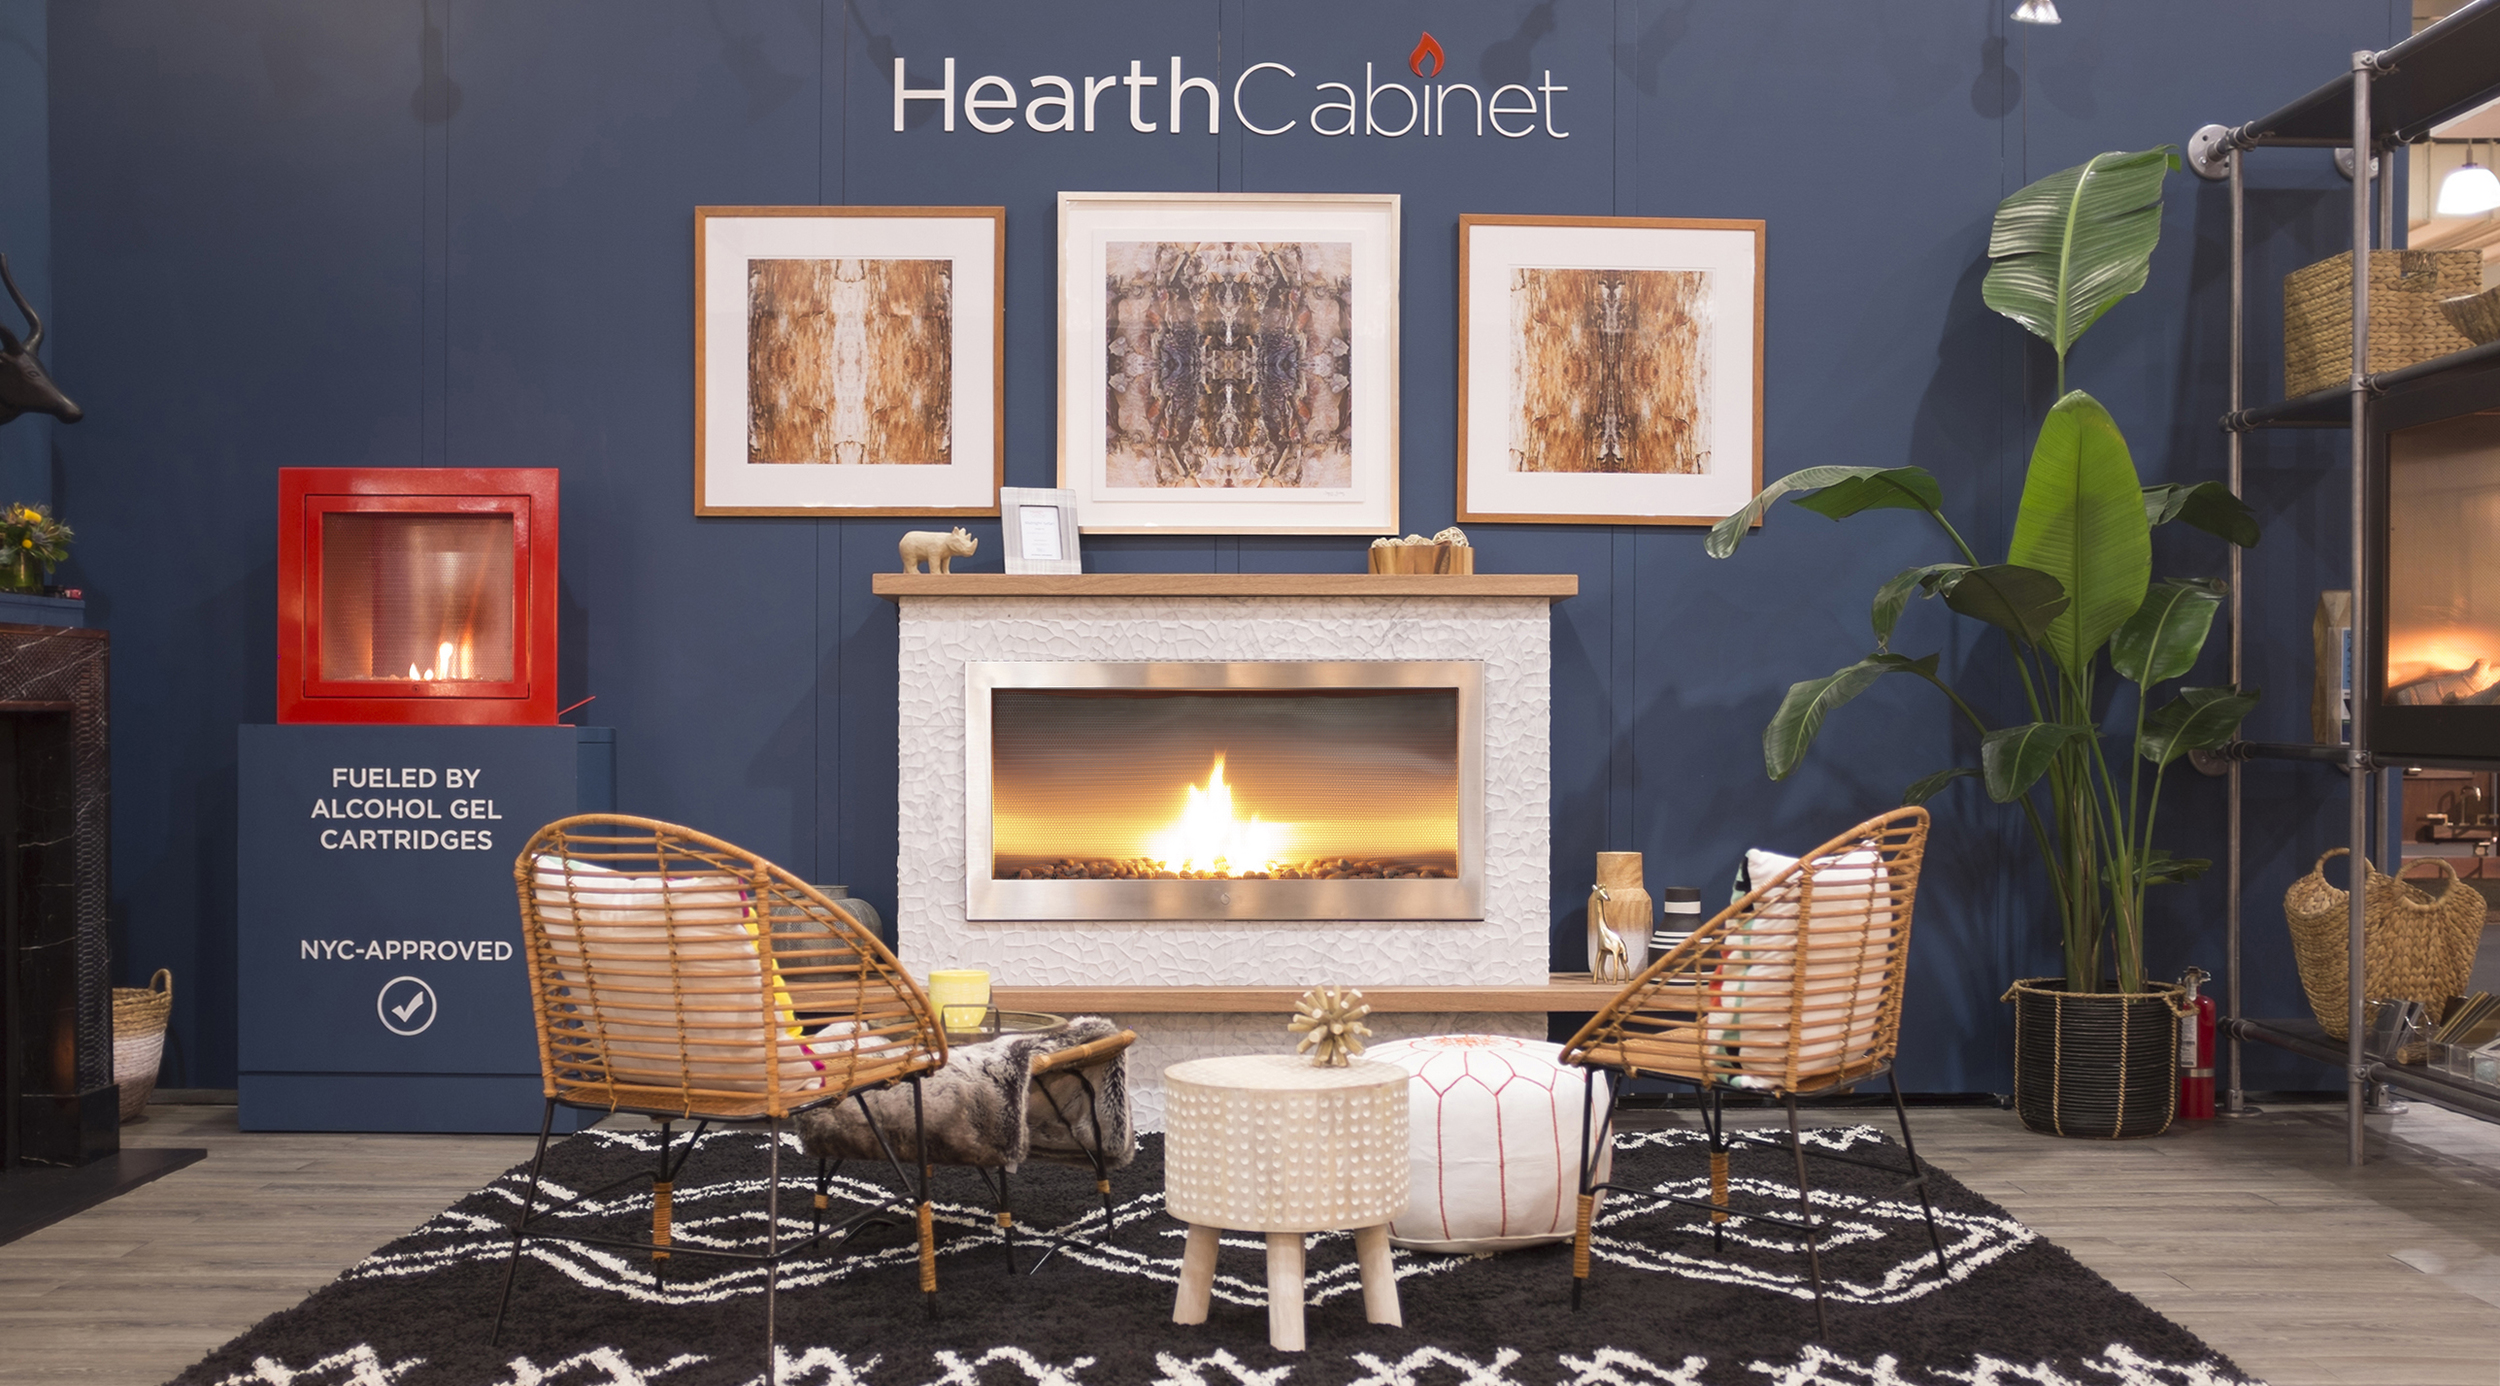 """Campion Platt took our booth on a """"Midnight Safari"""".    We're excited for you to see photos from our booth at the recent ICFF show. It was our most beautiful booth yet thanks to Campion Platt, Chesney's mantels, TileBar, and artist Dagmara Weinberg."""